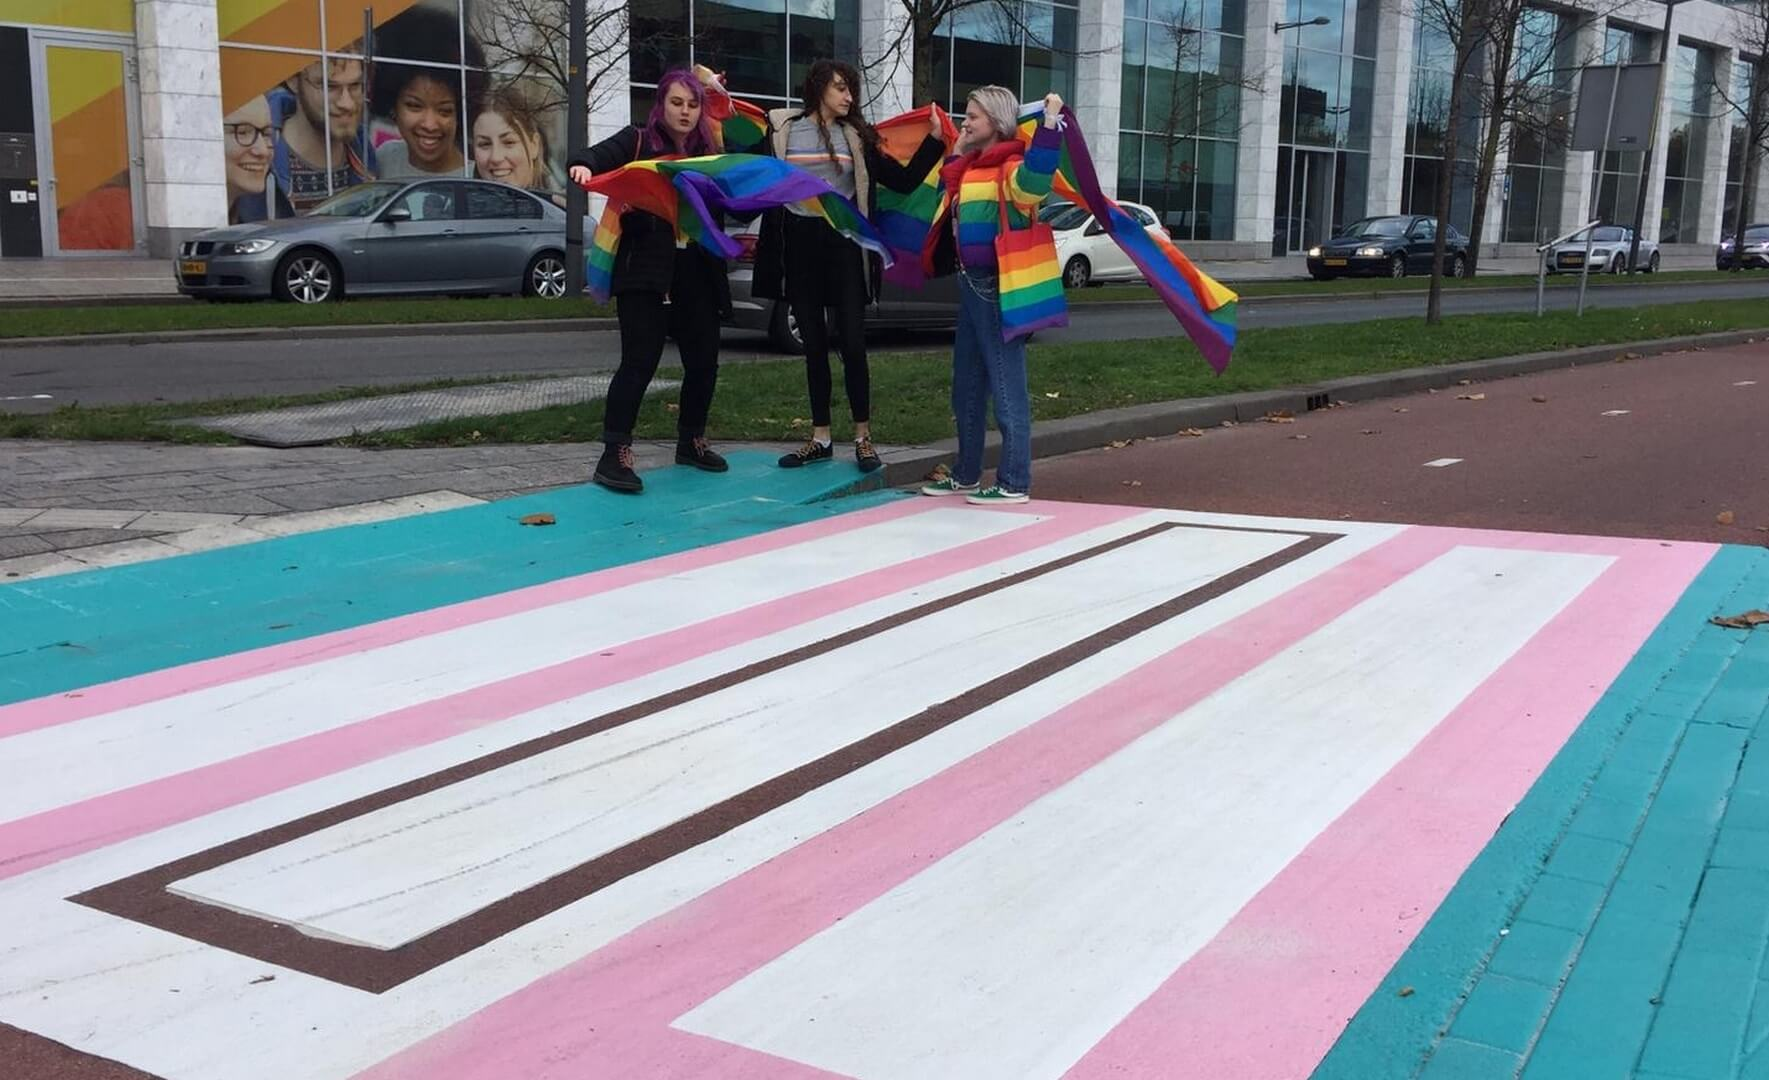 Why? Netherlands' first 'transgender crosswalk' leaves people scratching their heads